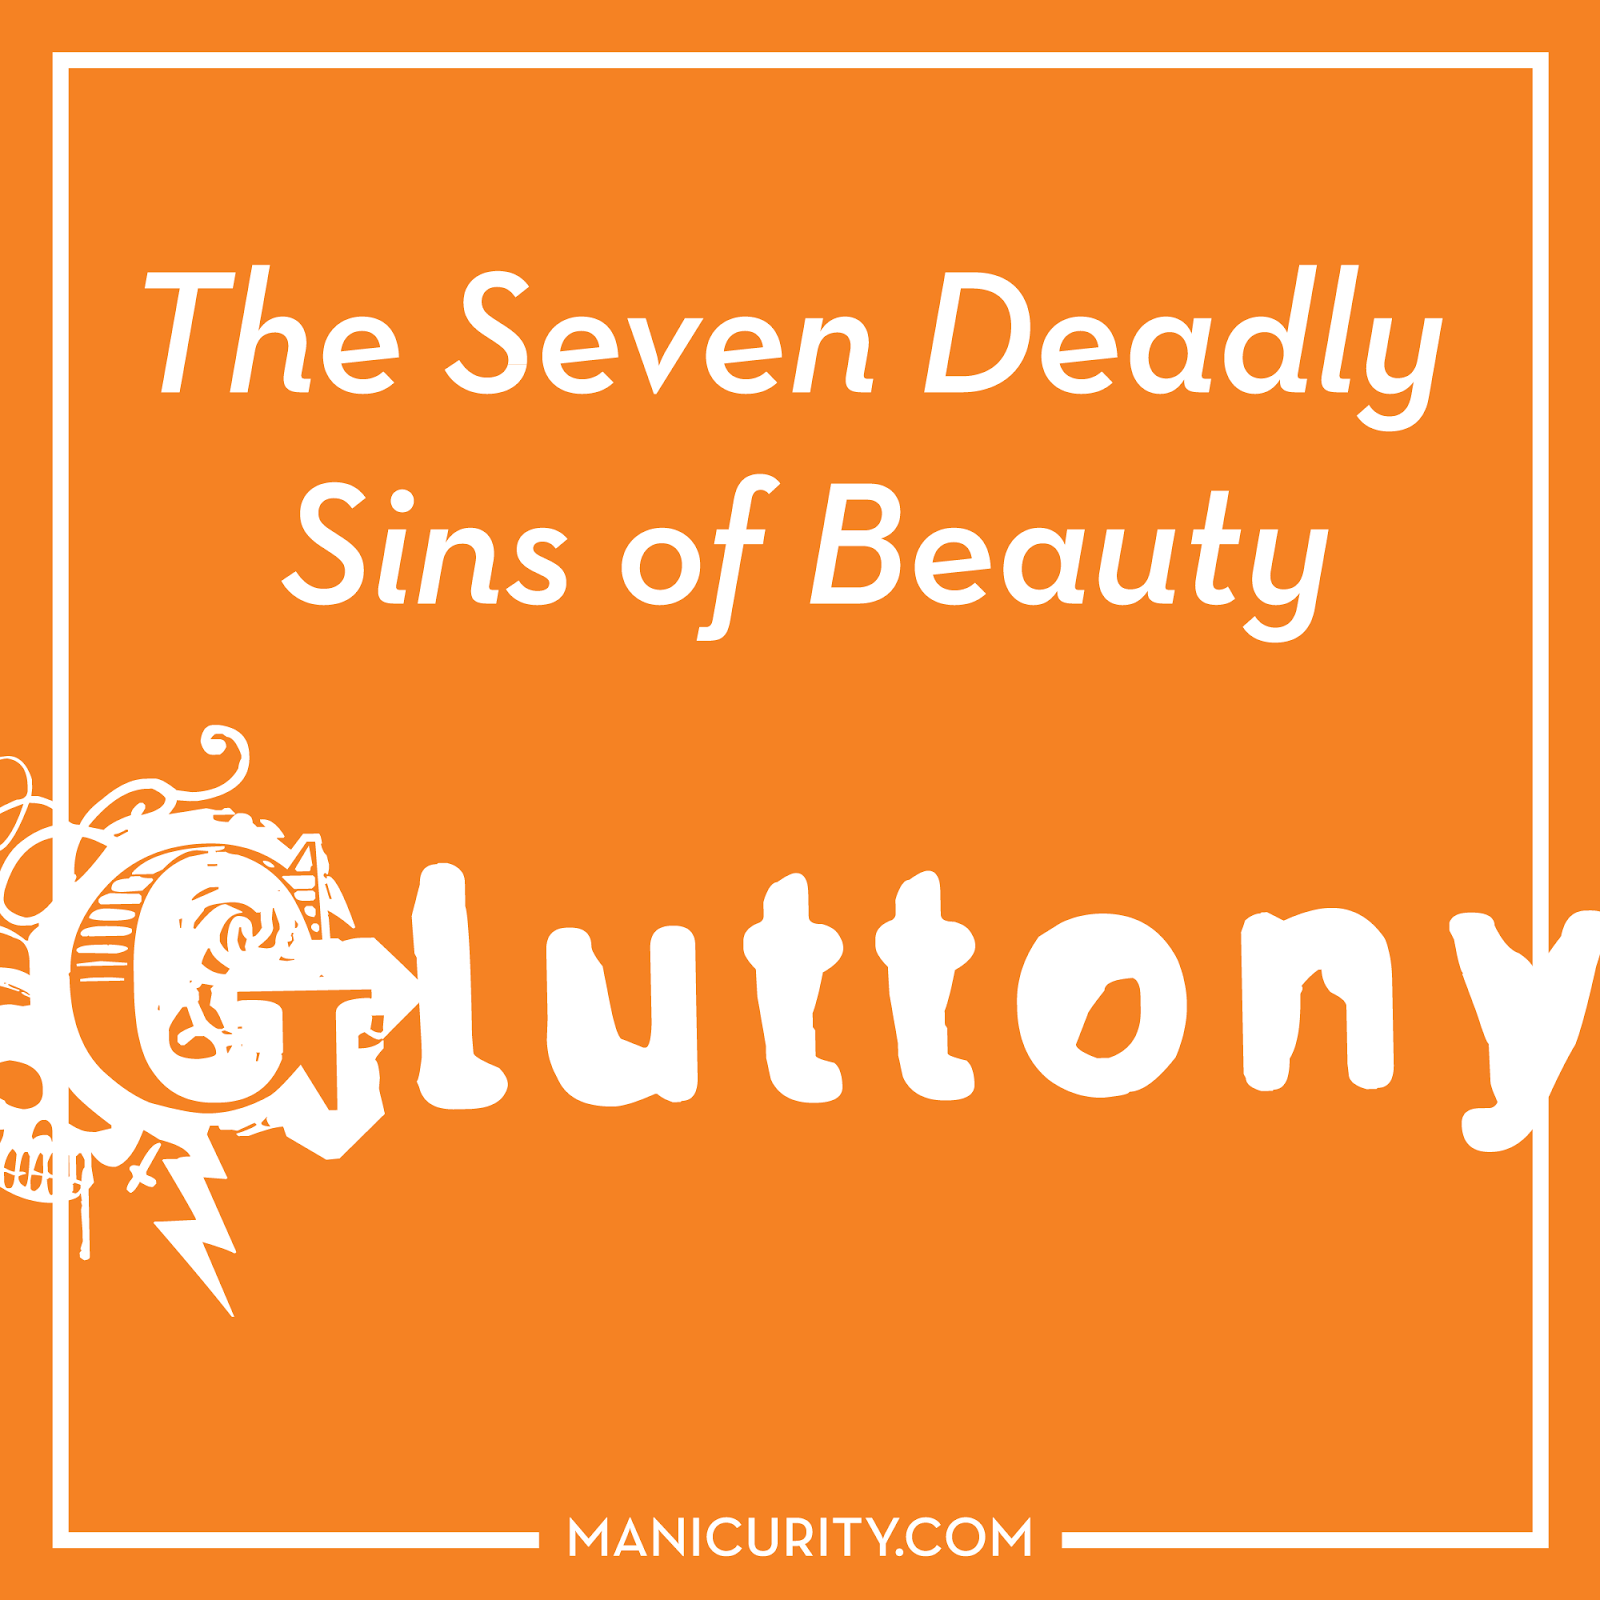 The Seven Deadly Sins of Beauty Tag - Gluttony = MAC lipsticks and dotticures | Manicurity.com